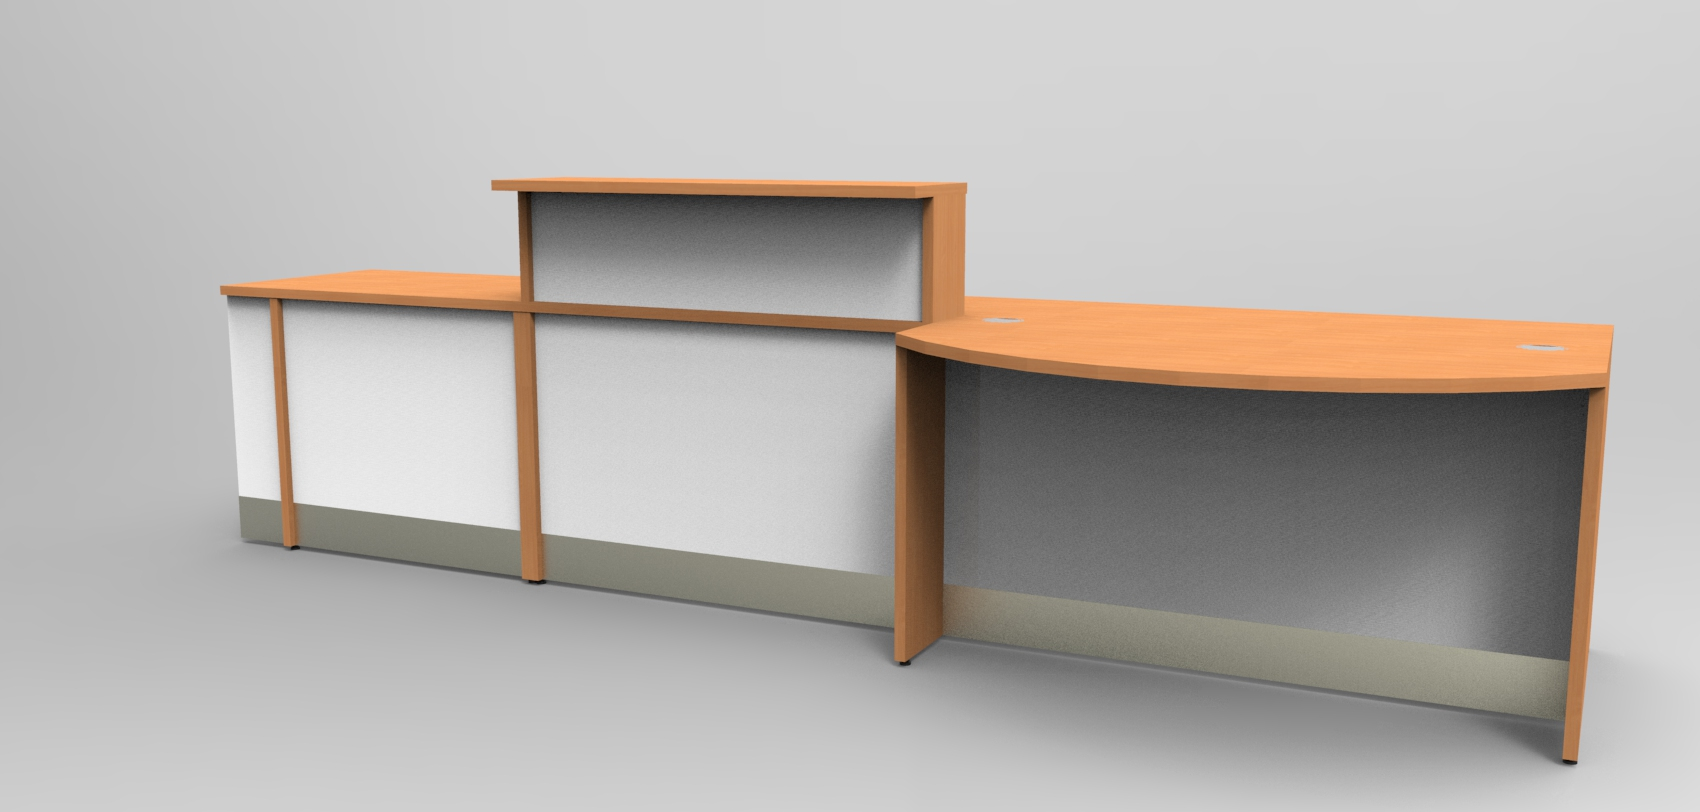 Render- Bespoke DDA reception desk finished in Beech and White